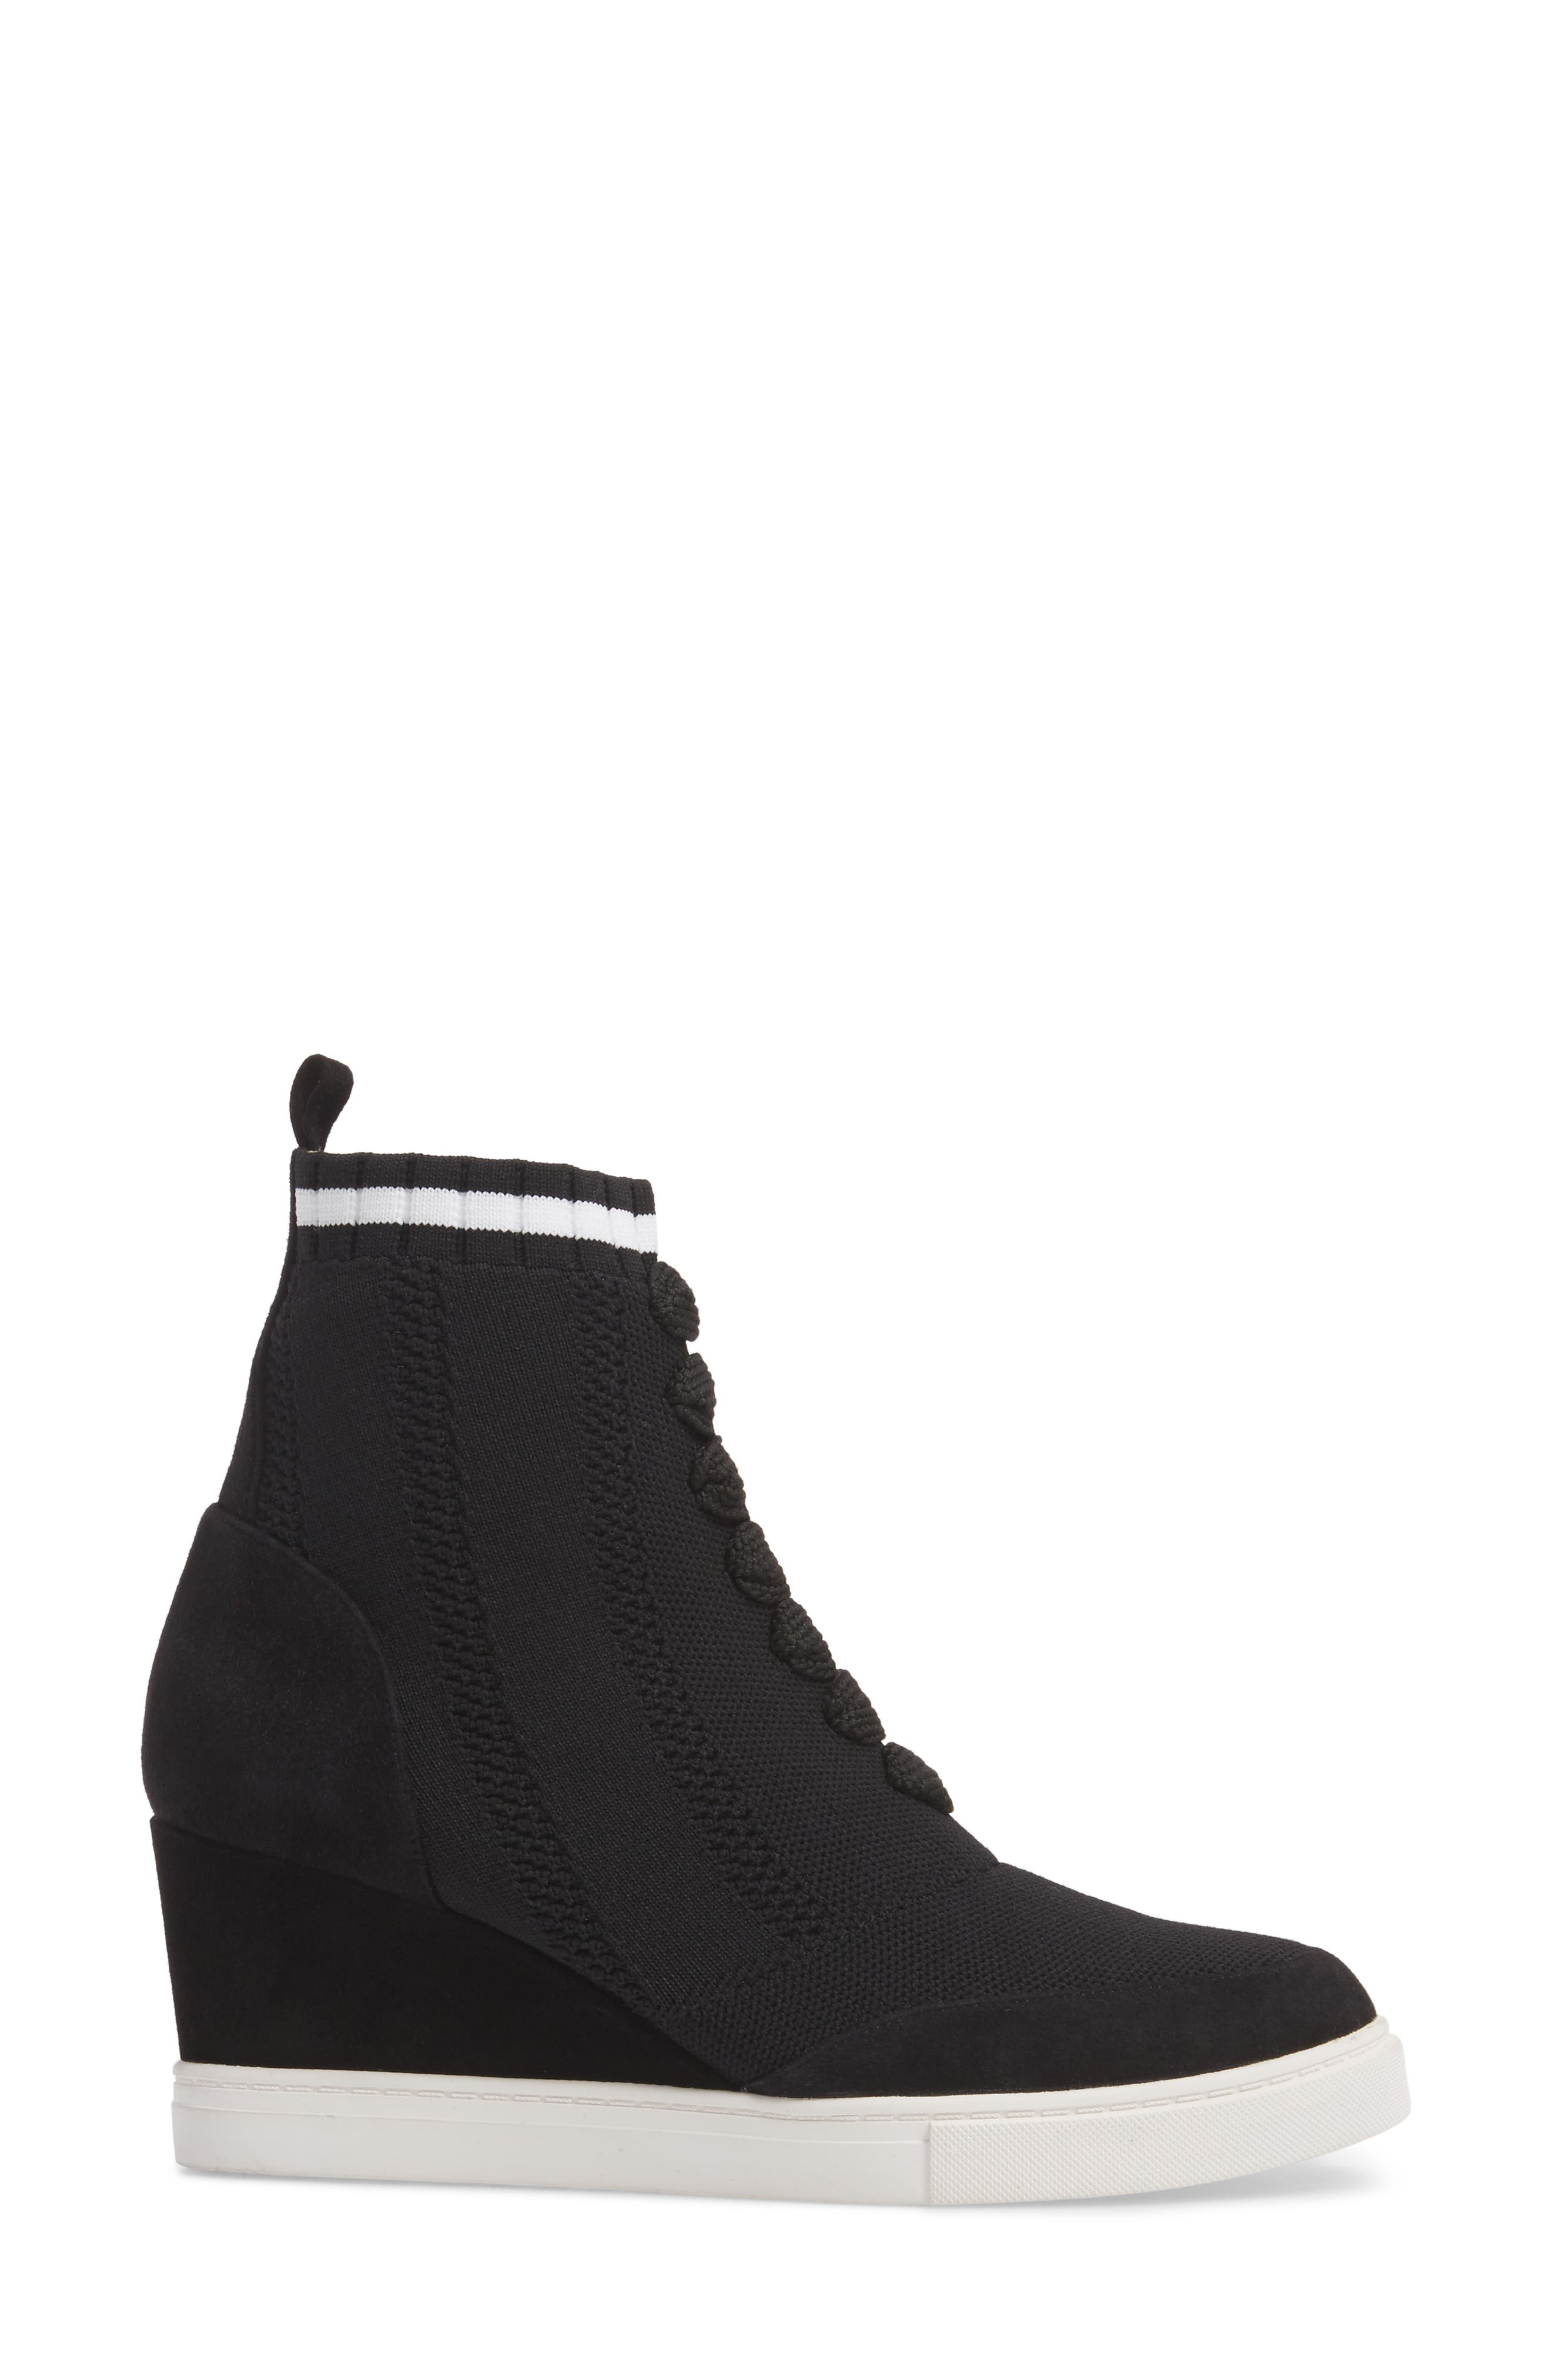 LINEA PAOLO, Fabiana Wedge Sneaker, Alternate thumbnail 3, color, BLACK SUEDE